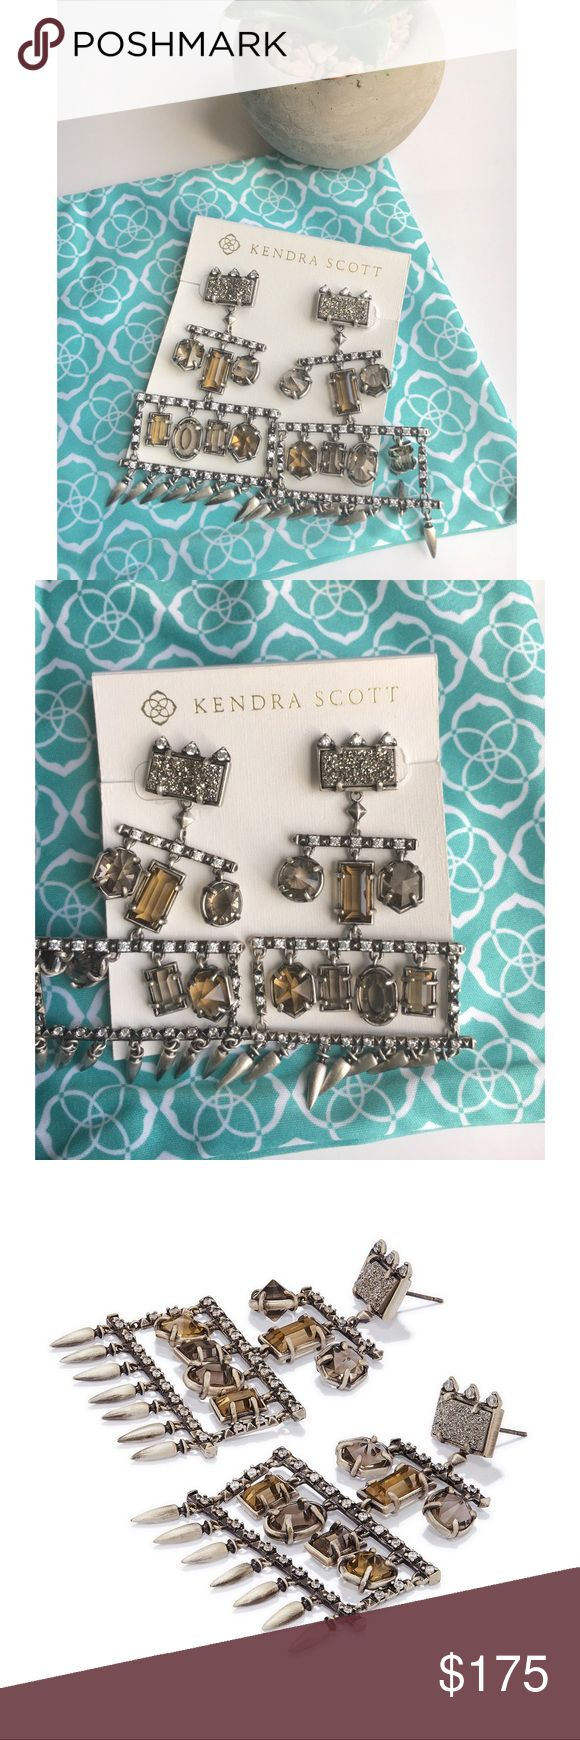 "Kendra Scott Emmylou Statement Earrings With the Emmylou Statement Earrings in Antique Silver, sparkling stones dangle in a variety of shapes to create a chandelier silhouette certain to turn heads.  • Antique Silver Plated Over Brass • Size: 2.6""L x 1.73""W on post • Material: dark smoky translucent glass, smoky translucent glass, platinum drusy  ✨Please note: Due to the one-of-a-kind nature of the medium, exact color patterns may vary slightly from the image shown. Kendra Scott Jewelry…"